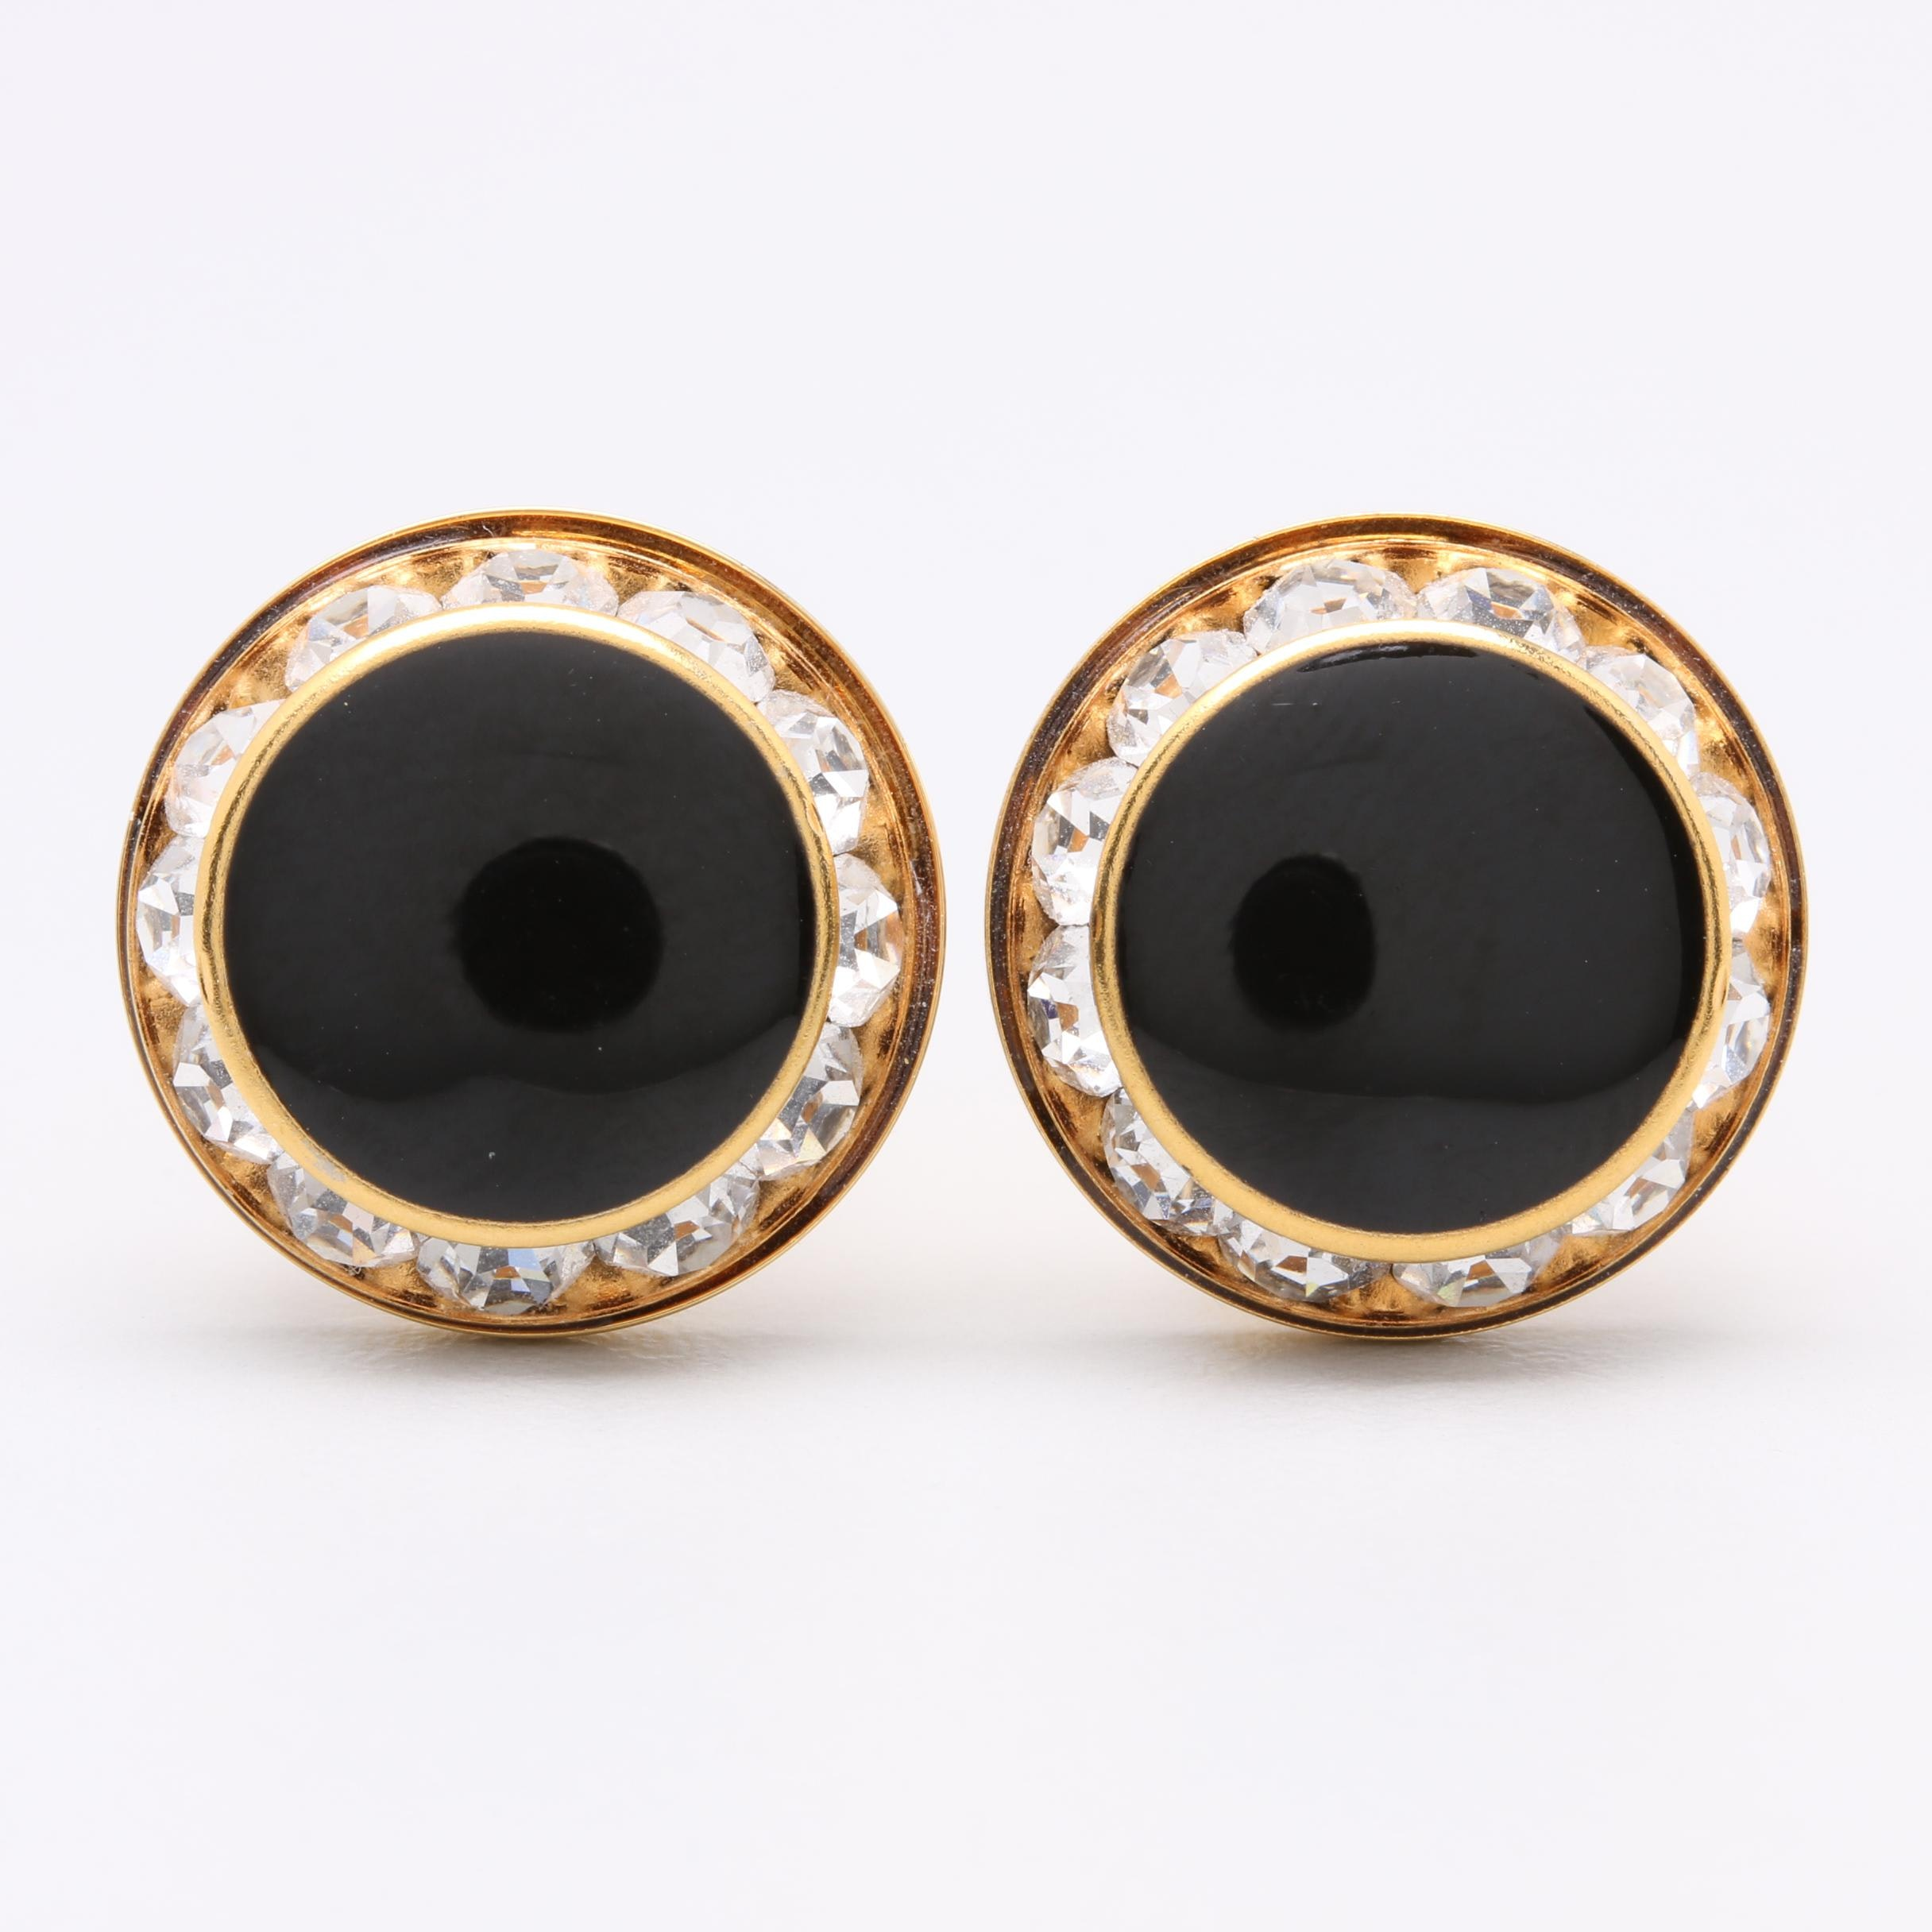 Gold Tone Black Glass Cufflinks with Foilback Accents